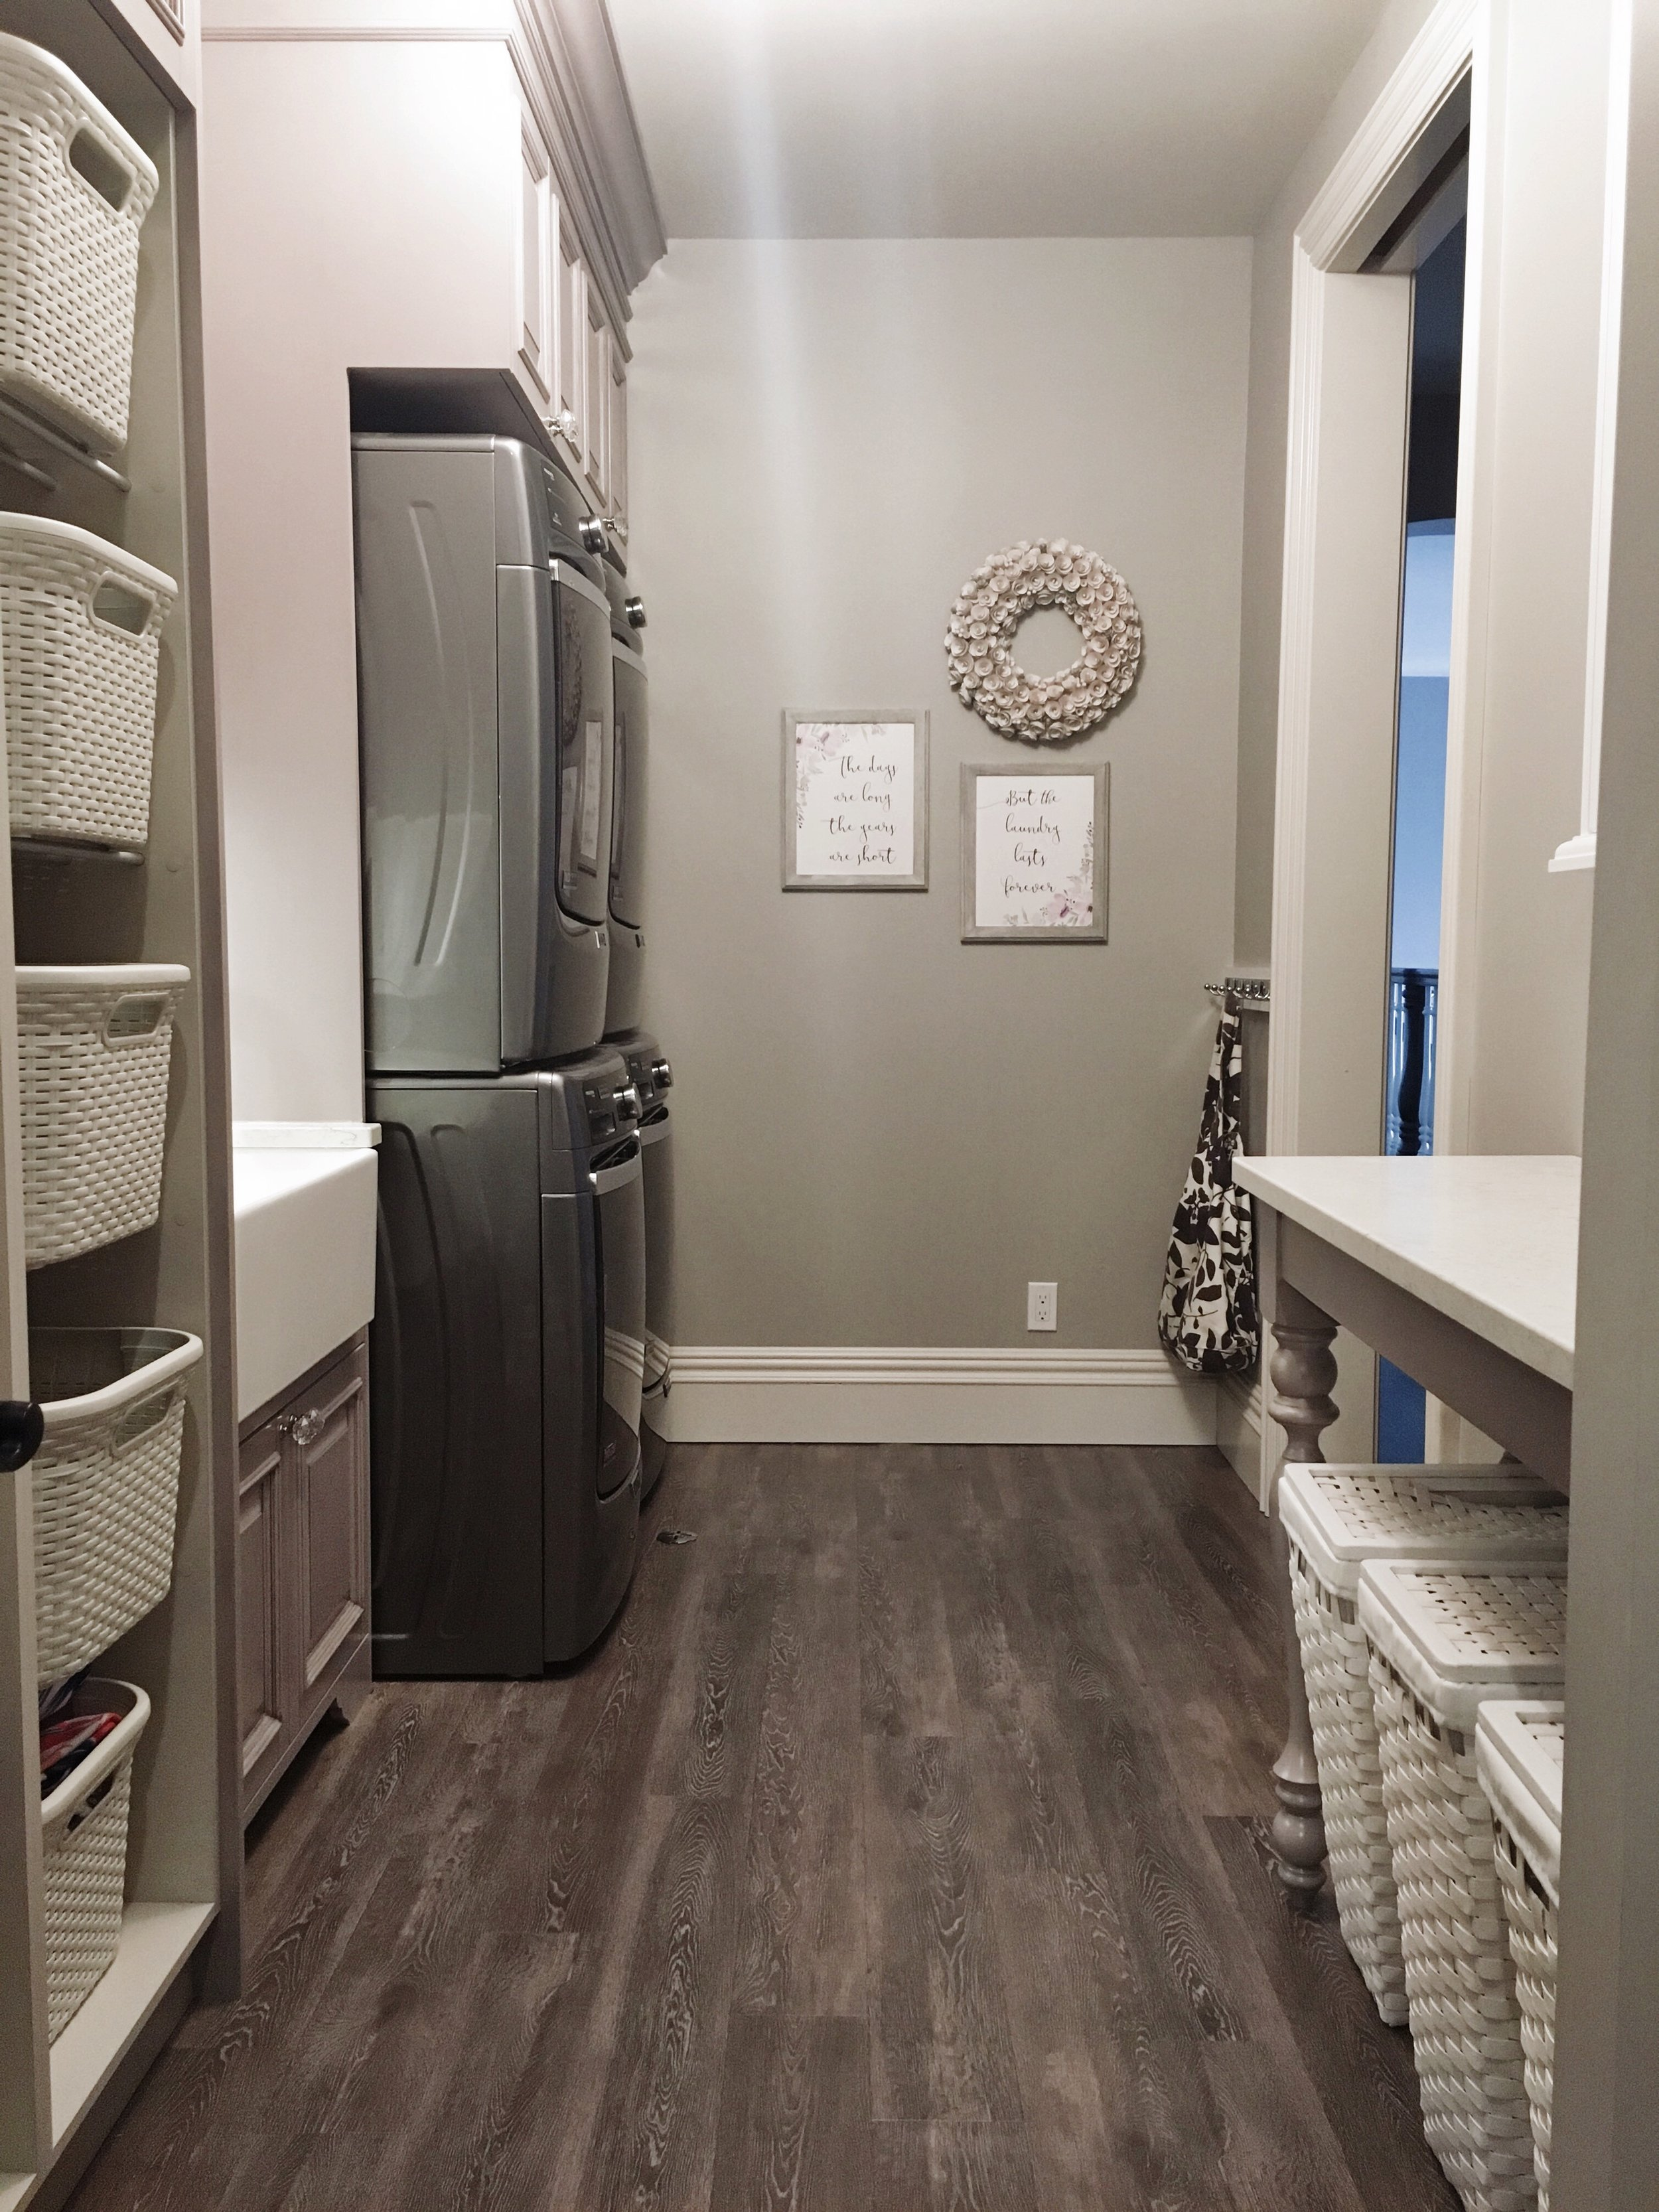 12 Laundry Room Ideas For Big Families (Building or